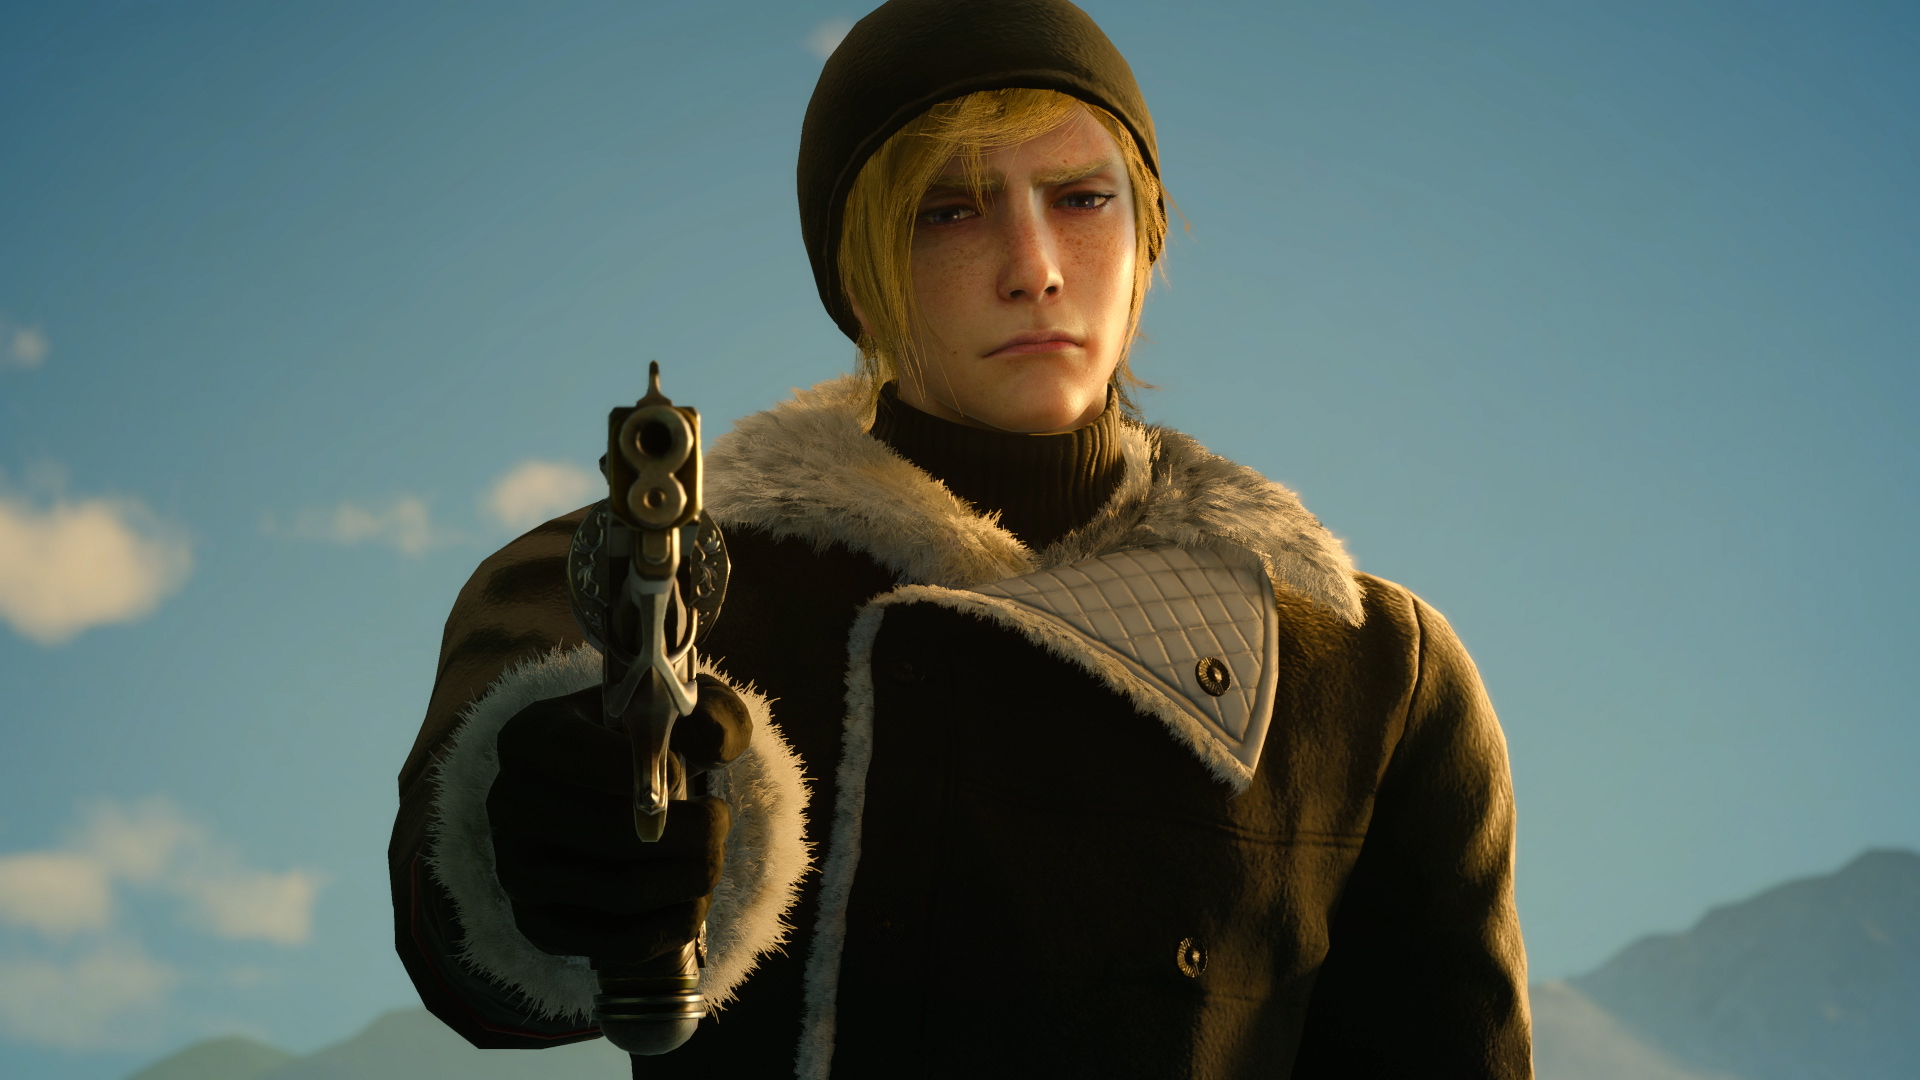 Final Fantasy XV: When should you play DLC episodes? Our guide to